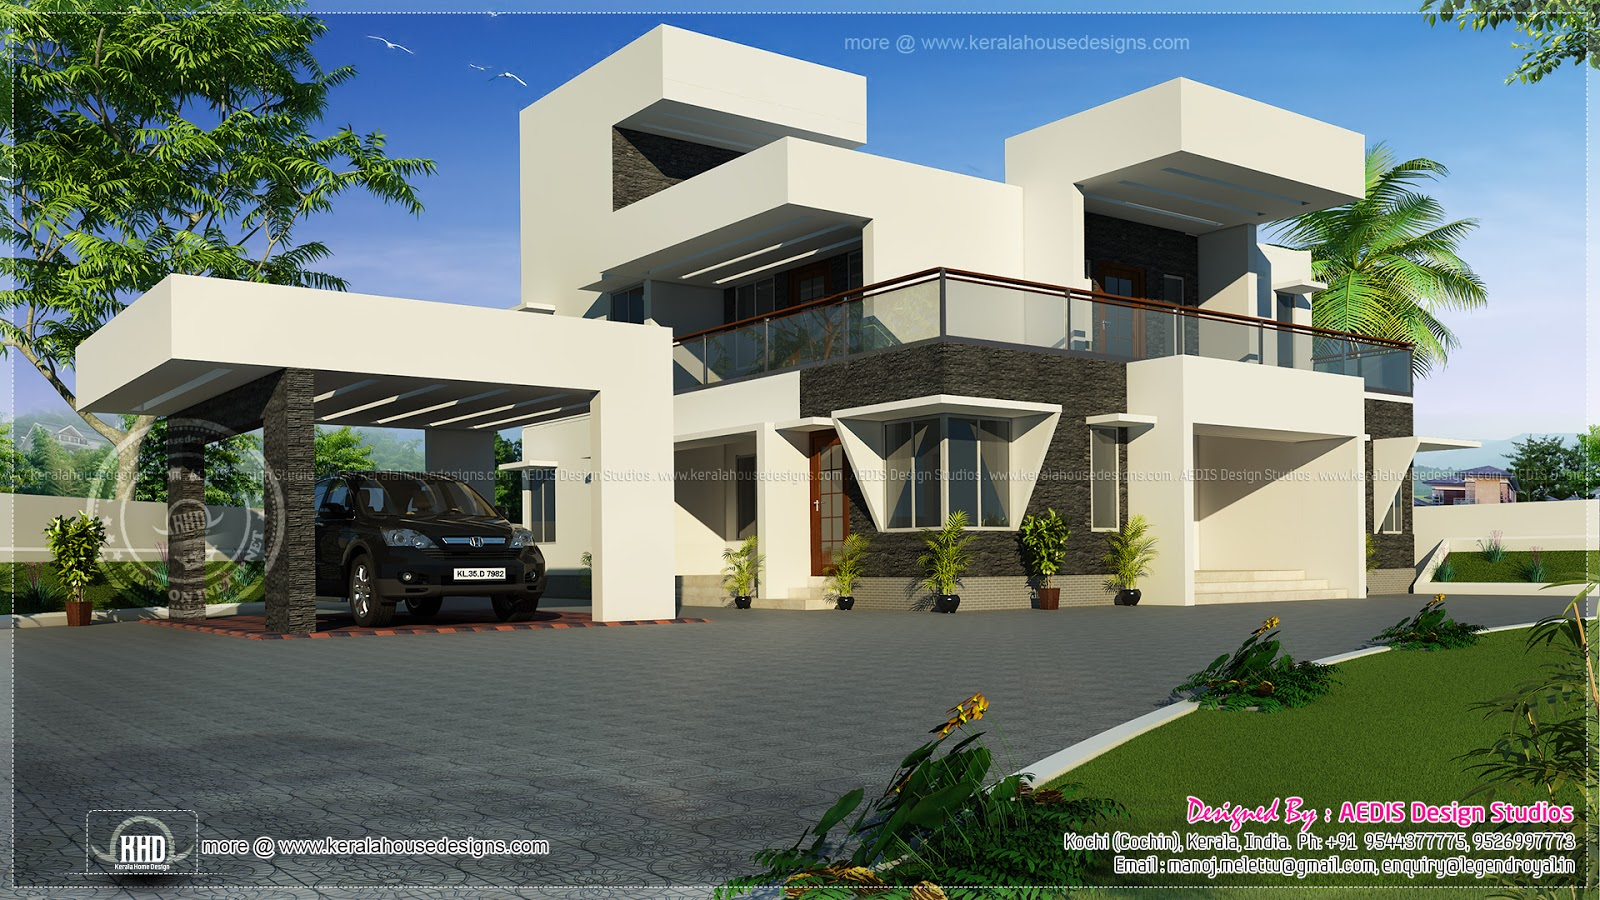 Modern contemporary style home exterior kerala home for Kerala modern house designs